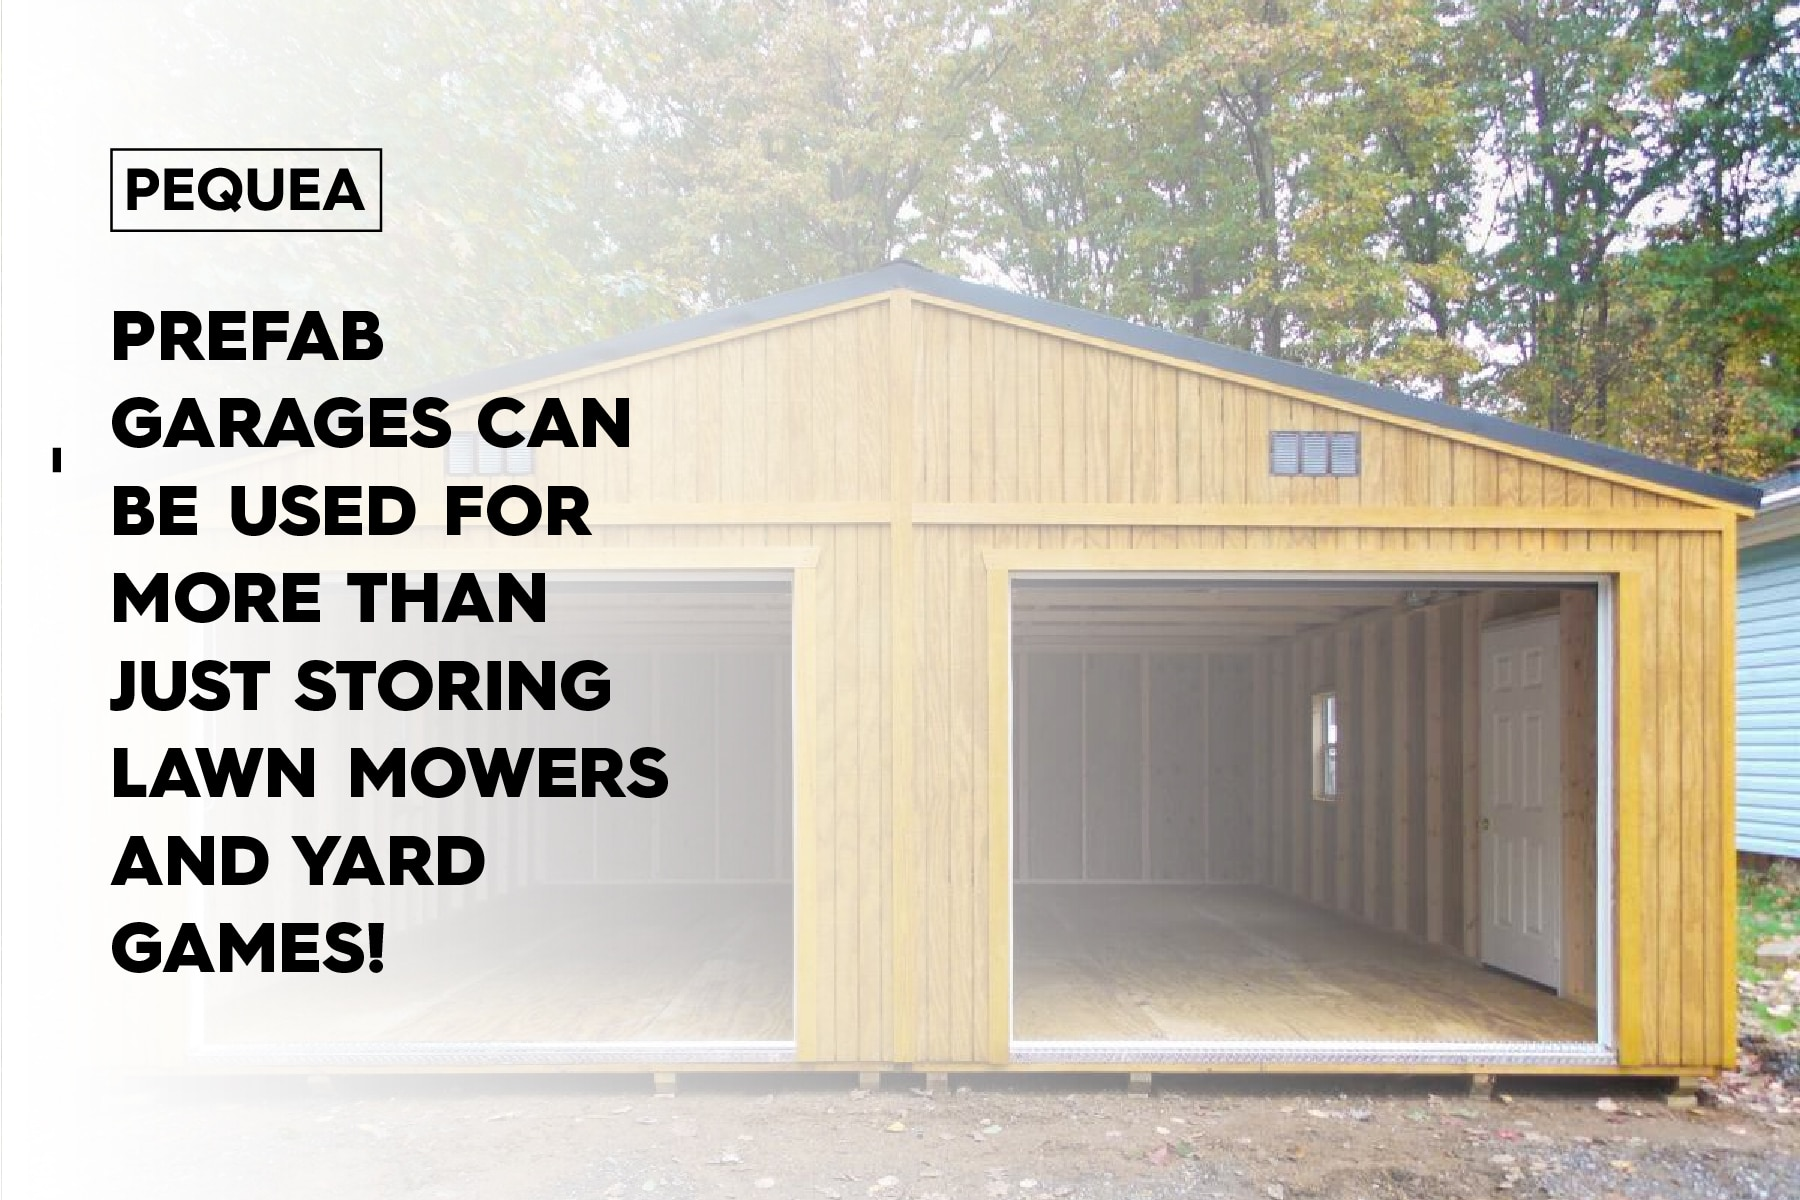 prefab garages can store more than just lawn mowers and tools